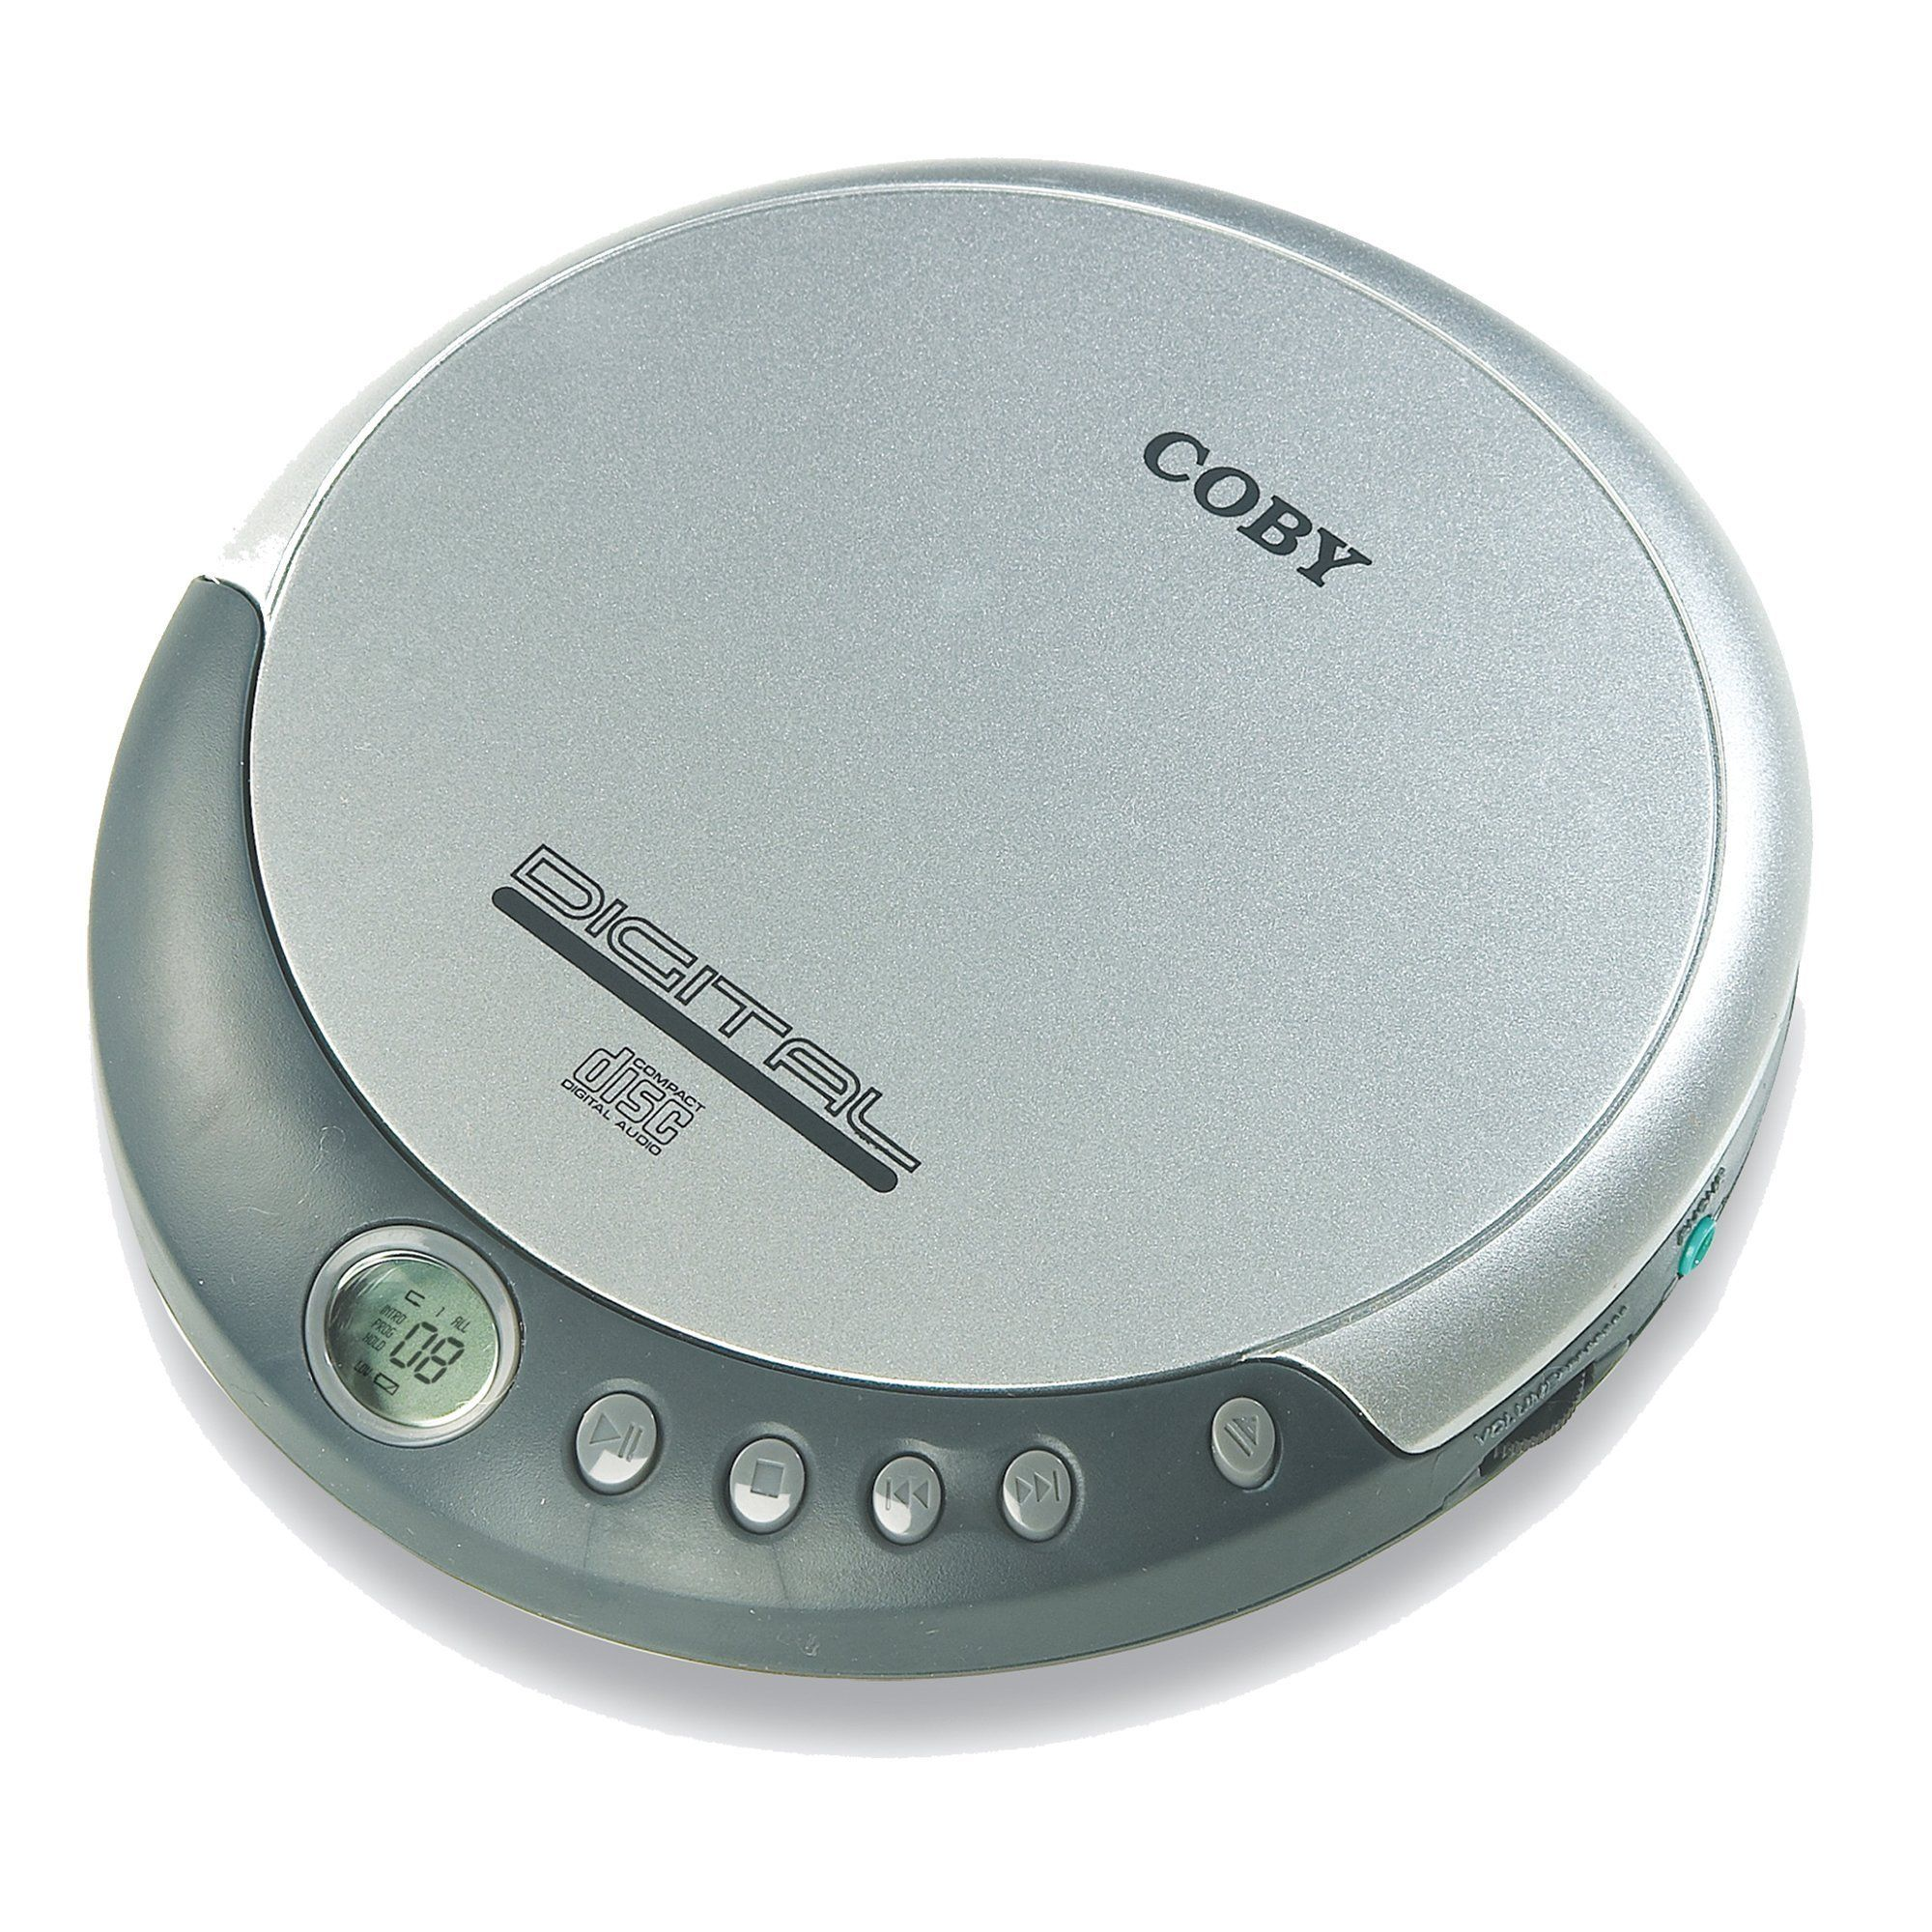 Coby CXCD109 Personal CD Player with Stereo Headphones, Silver